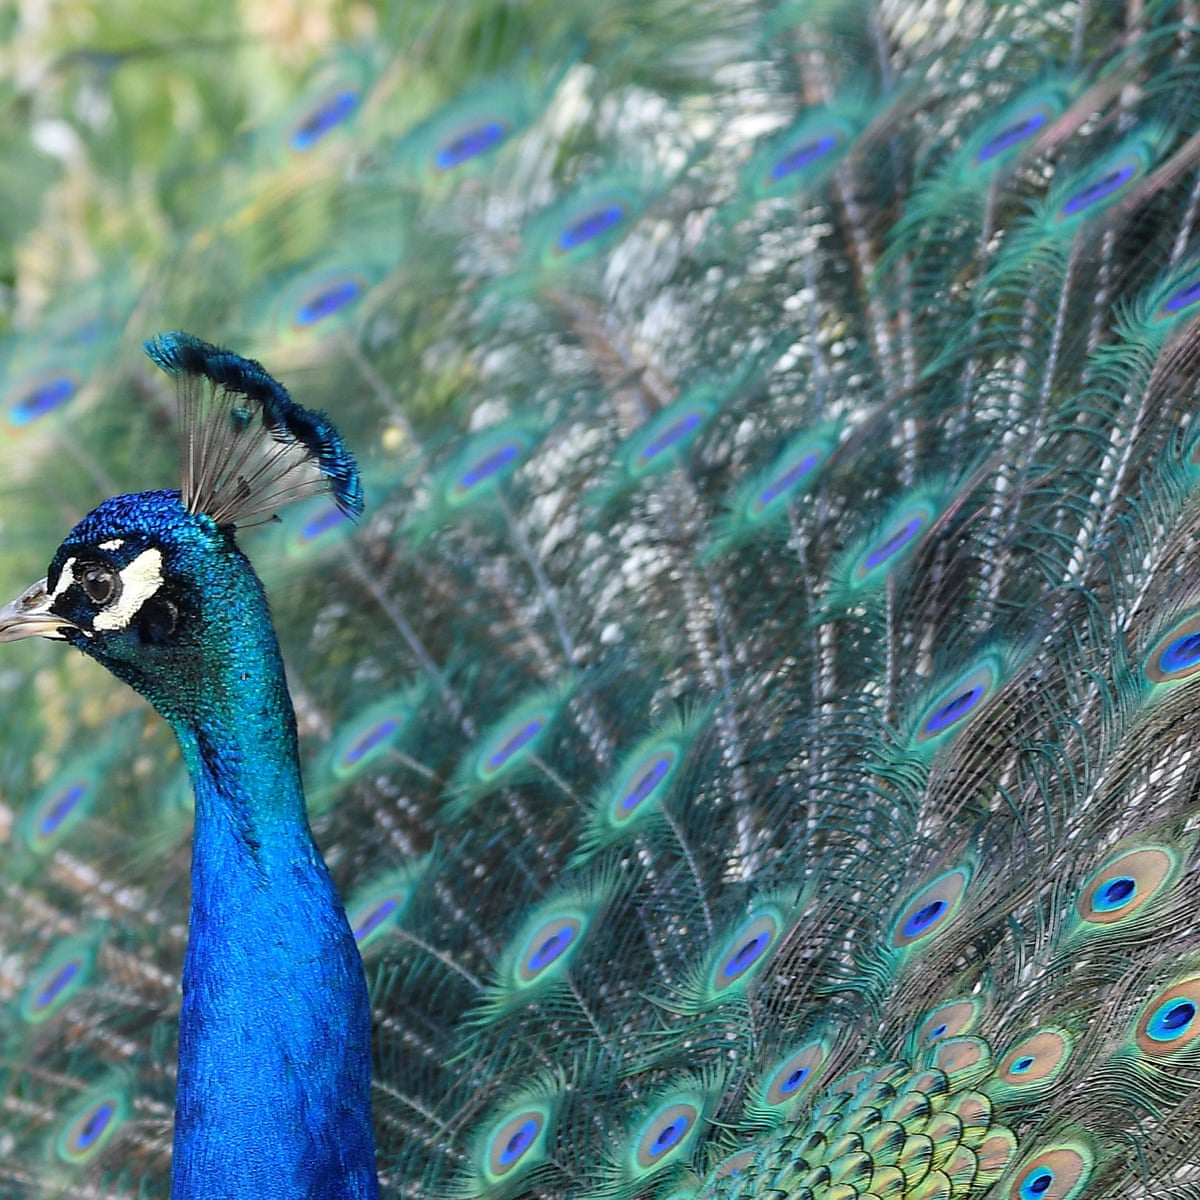 Ruffled Feathers Feral Peacocks Split Community In Canada Canada The Guardian